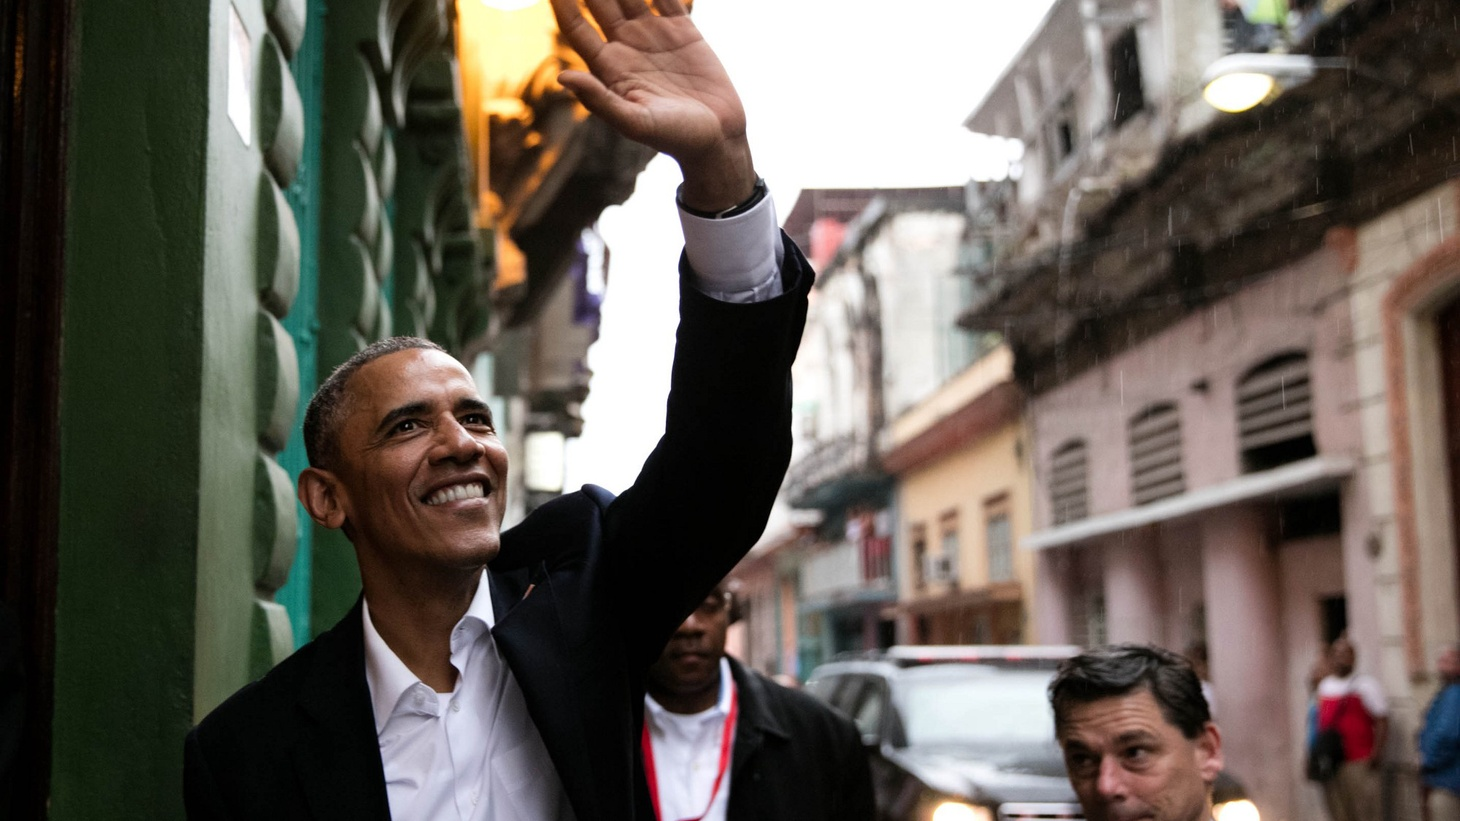 For the first time in almost 90 years, an American President has gone to Havana — but it's unclear how much political distance he's traveled. The Castro regime is still rounding up political dissidents, and Congress will not lift the economic embargo. We hear about a historic visit and the potential outcomes.